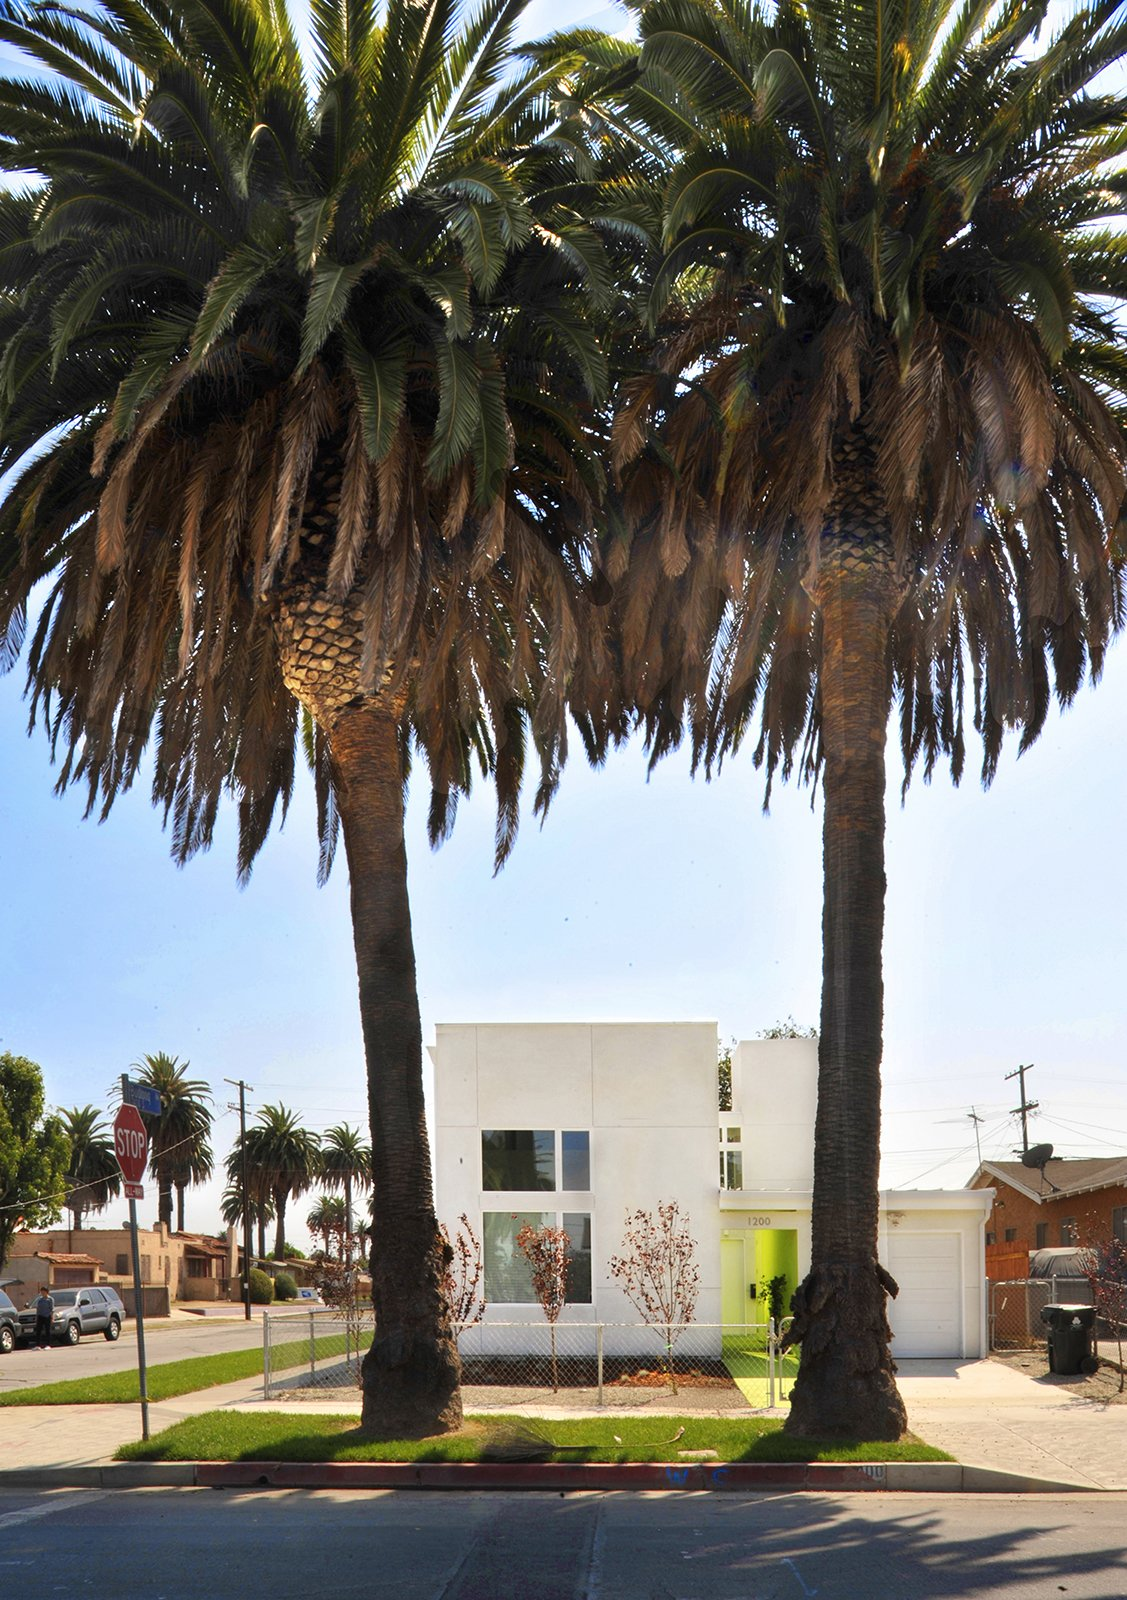 Vibrant Affordable Housing Prototypes in Los Angeles